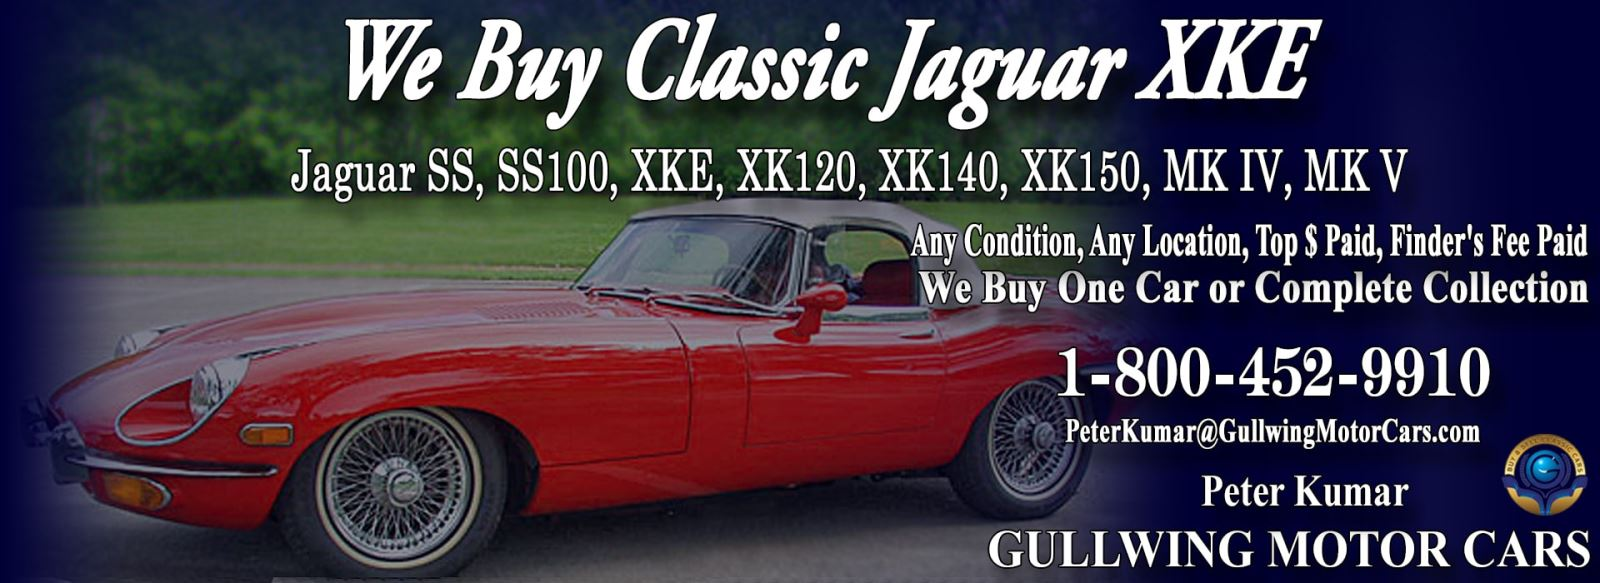 Classic Jaguar for sale, we buy vintage Jaguar. Call Peter Kumar. Gullwing Motor